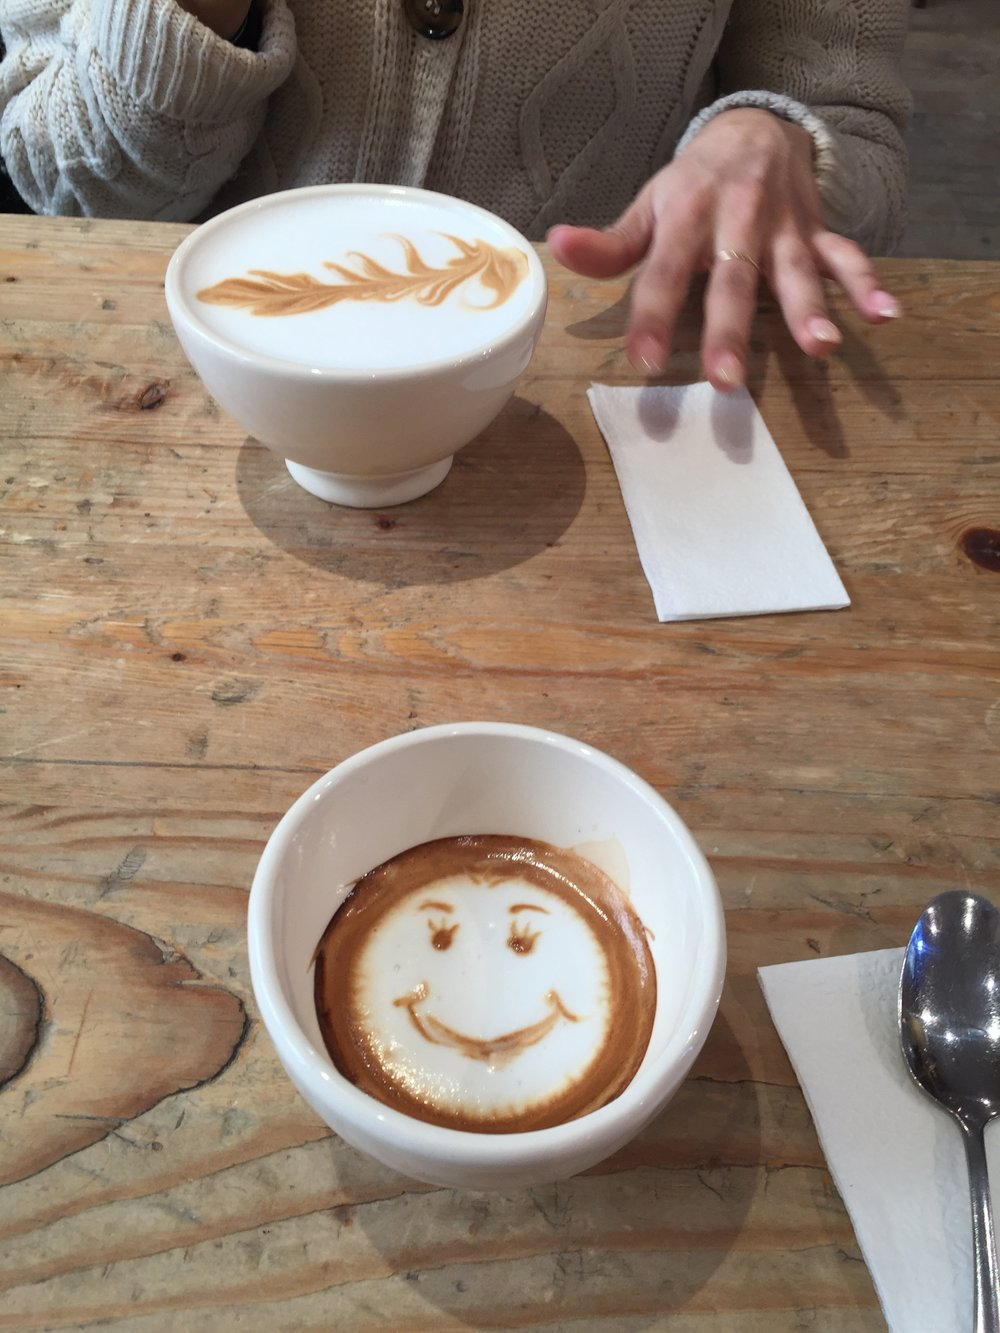 Received a smiley face on my macchiato recently and again a small thing is now memorable, as it's clever and also put a smile on my face, that's the aim with content, make it memorable and put a smile on peoples faces.